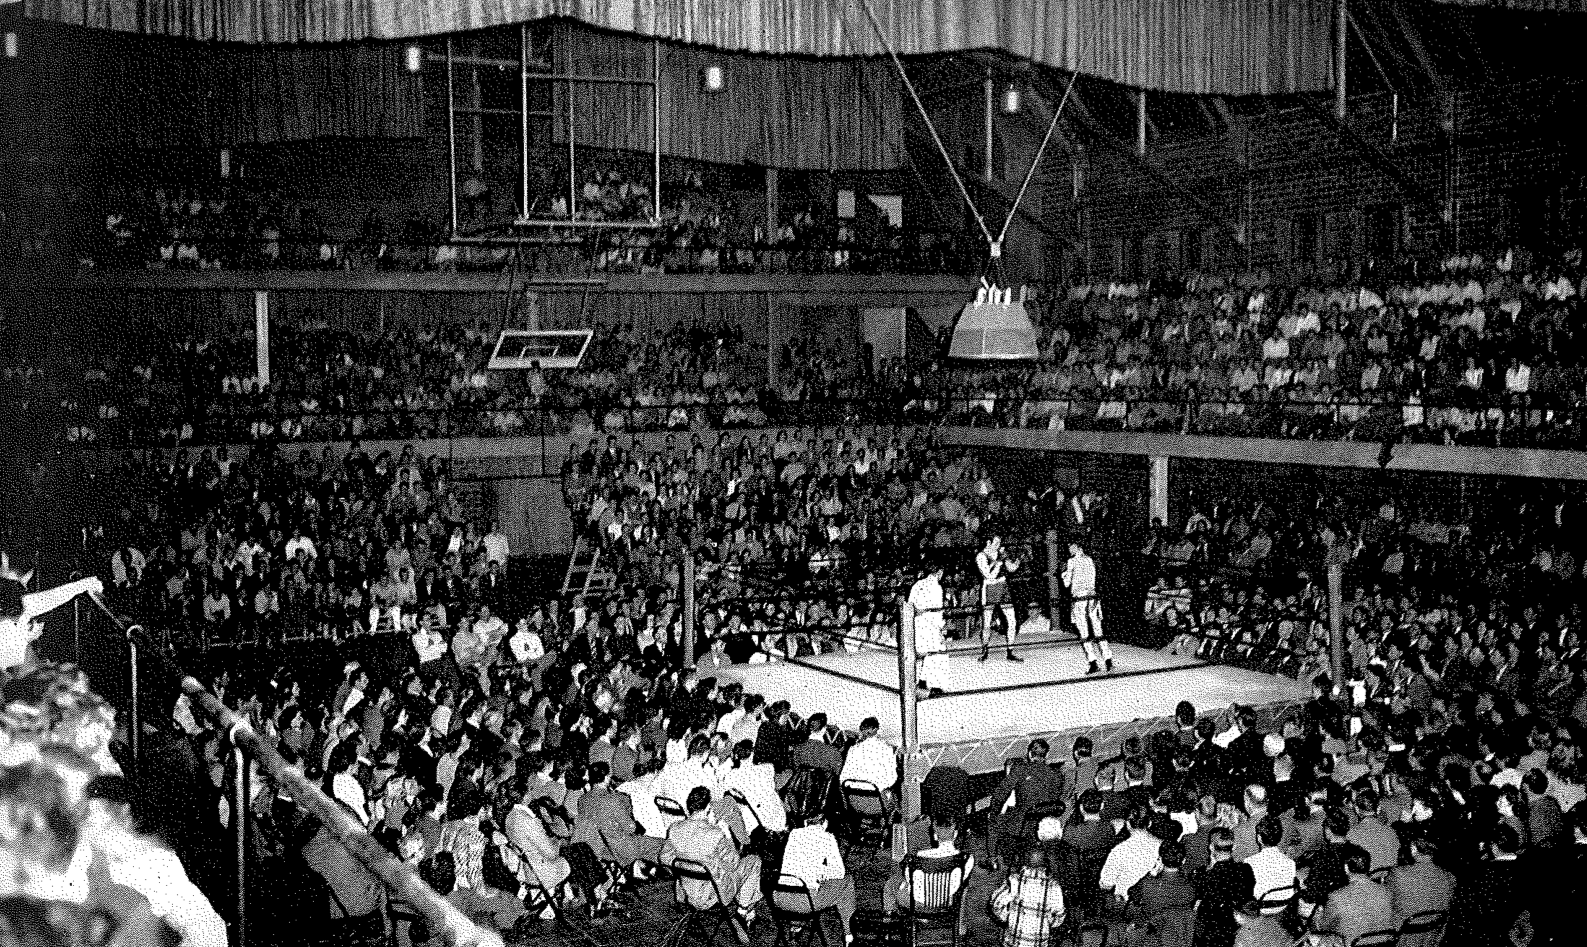 More than 5,200 fans packed Memorial Gym in the 1930s, 40s and 50s to watch Idaho's best boxers spar. The teams collected 19 total national championships. Courtesy photos | UI